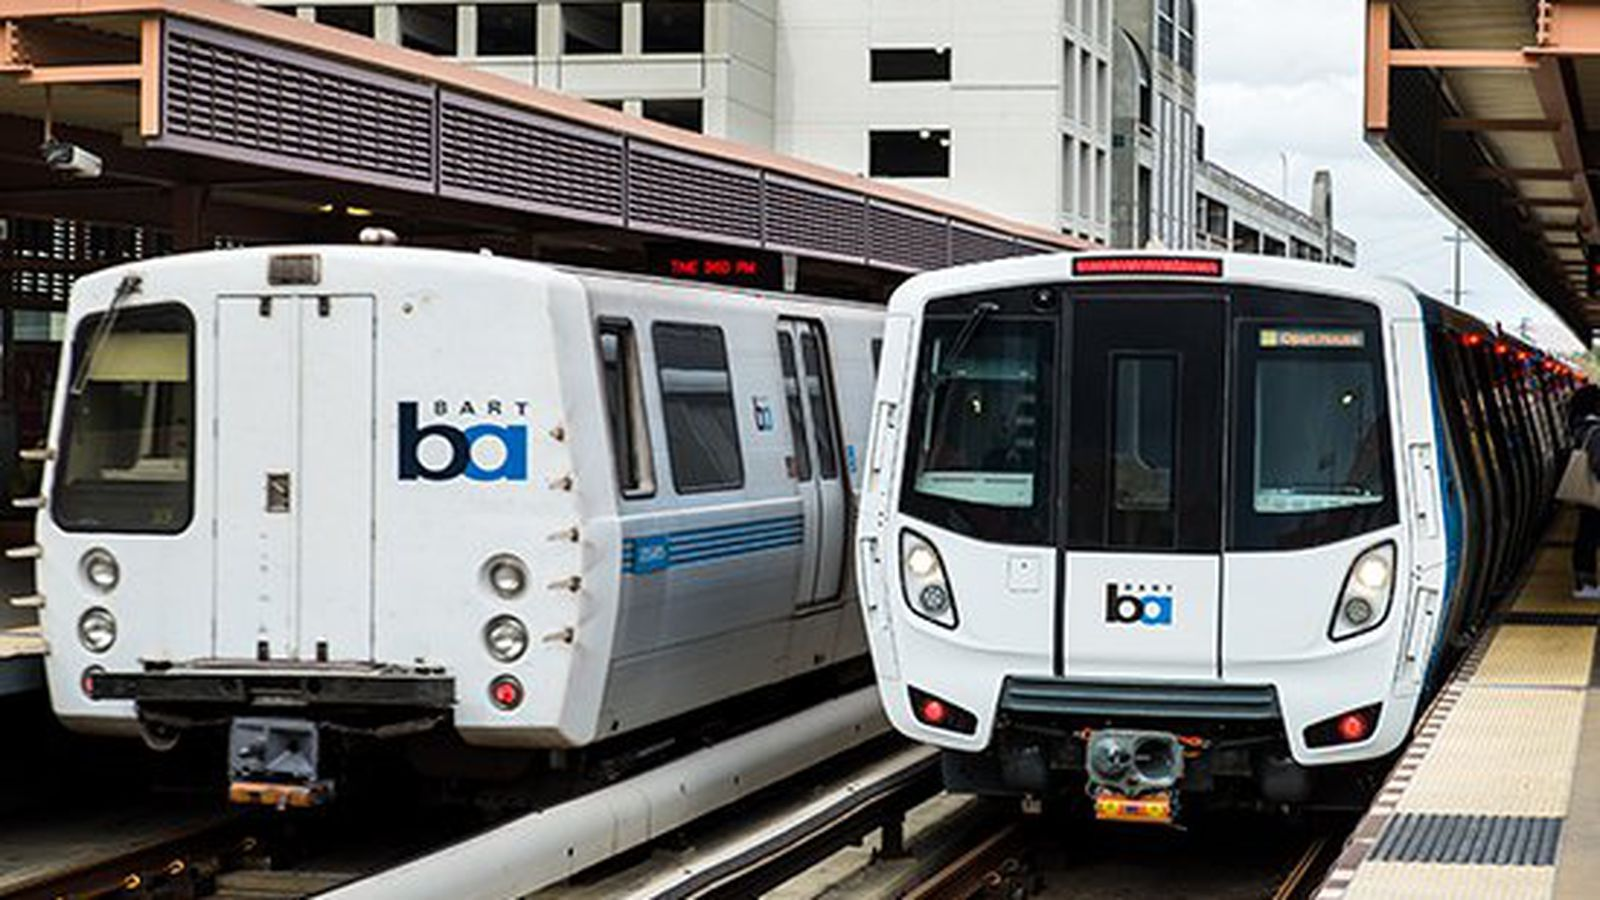 New BART trains arriving this September Train, Bay area